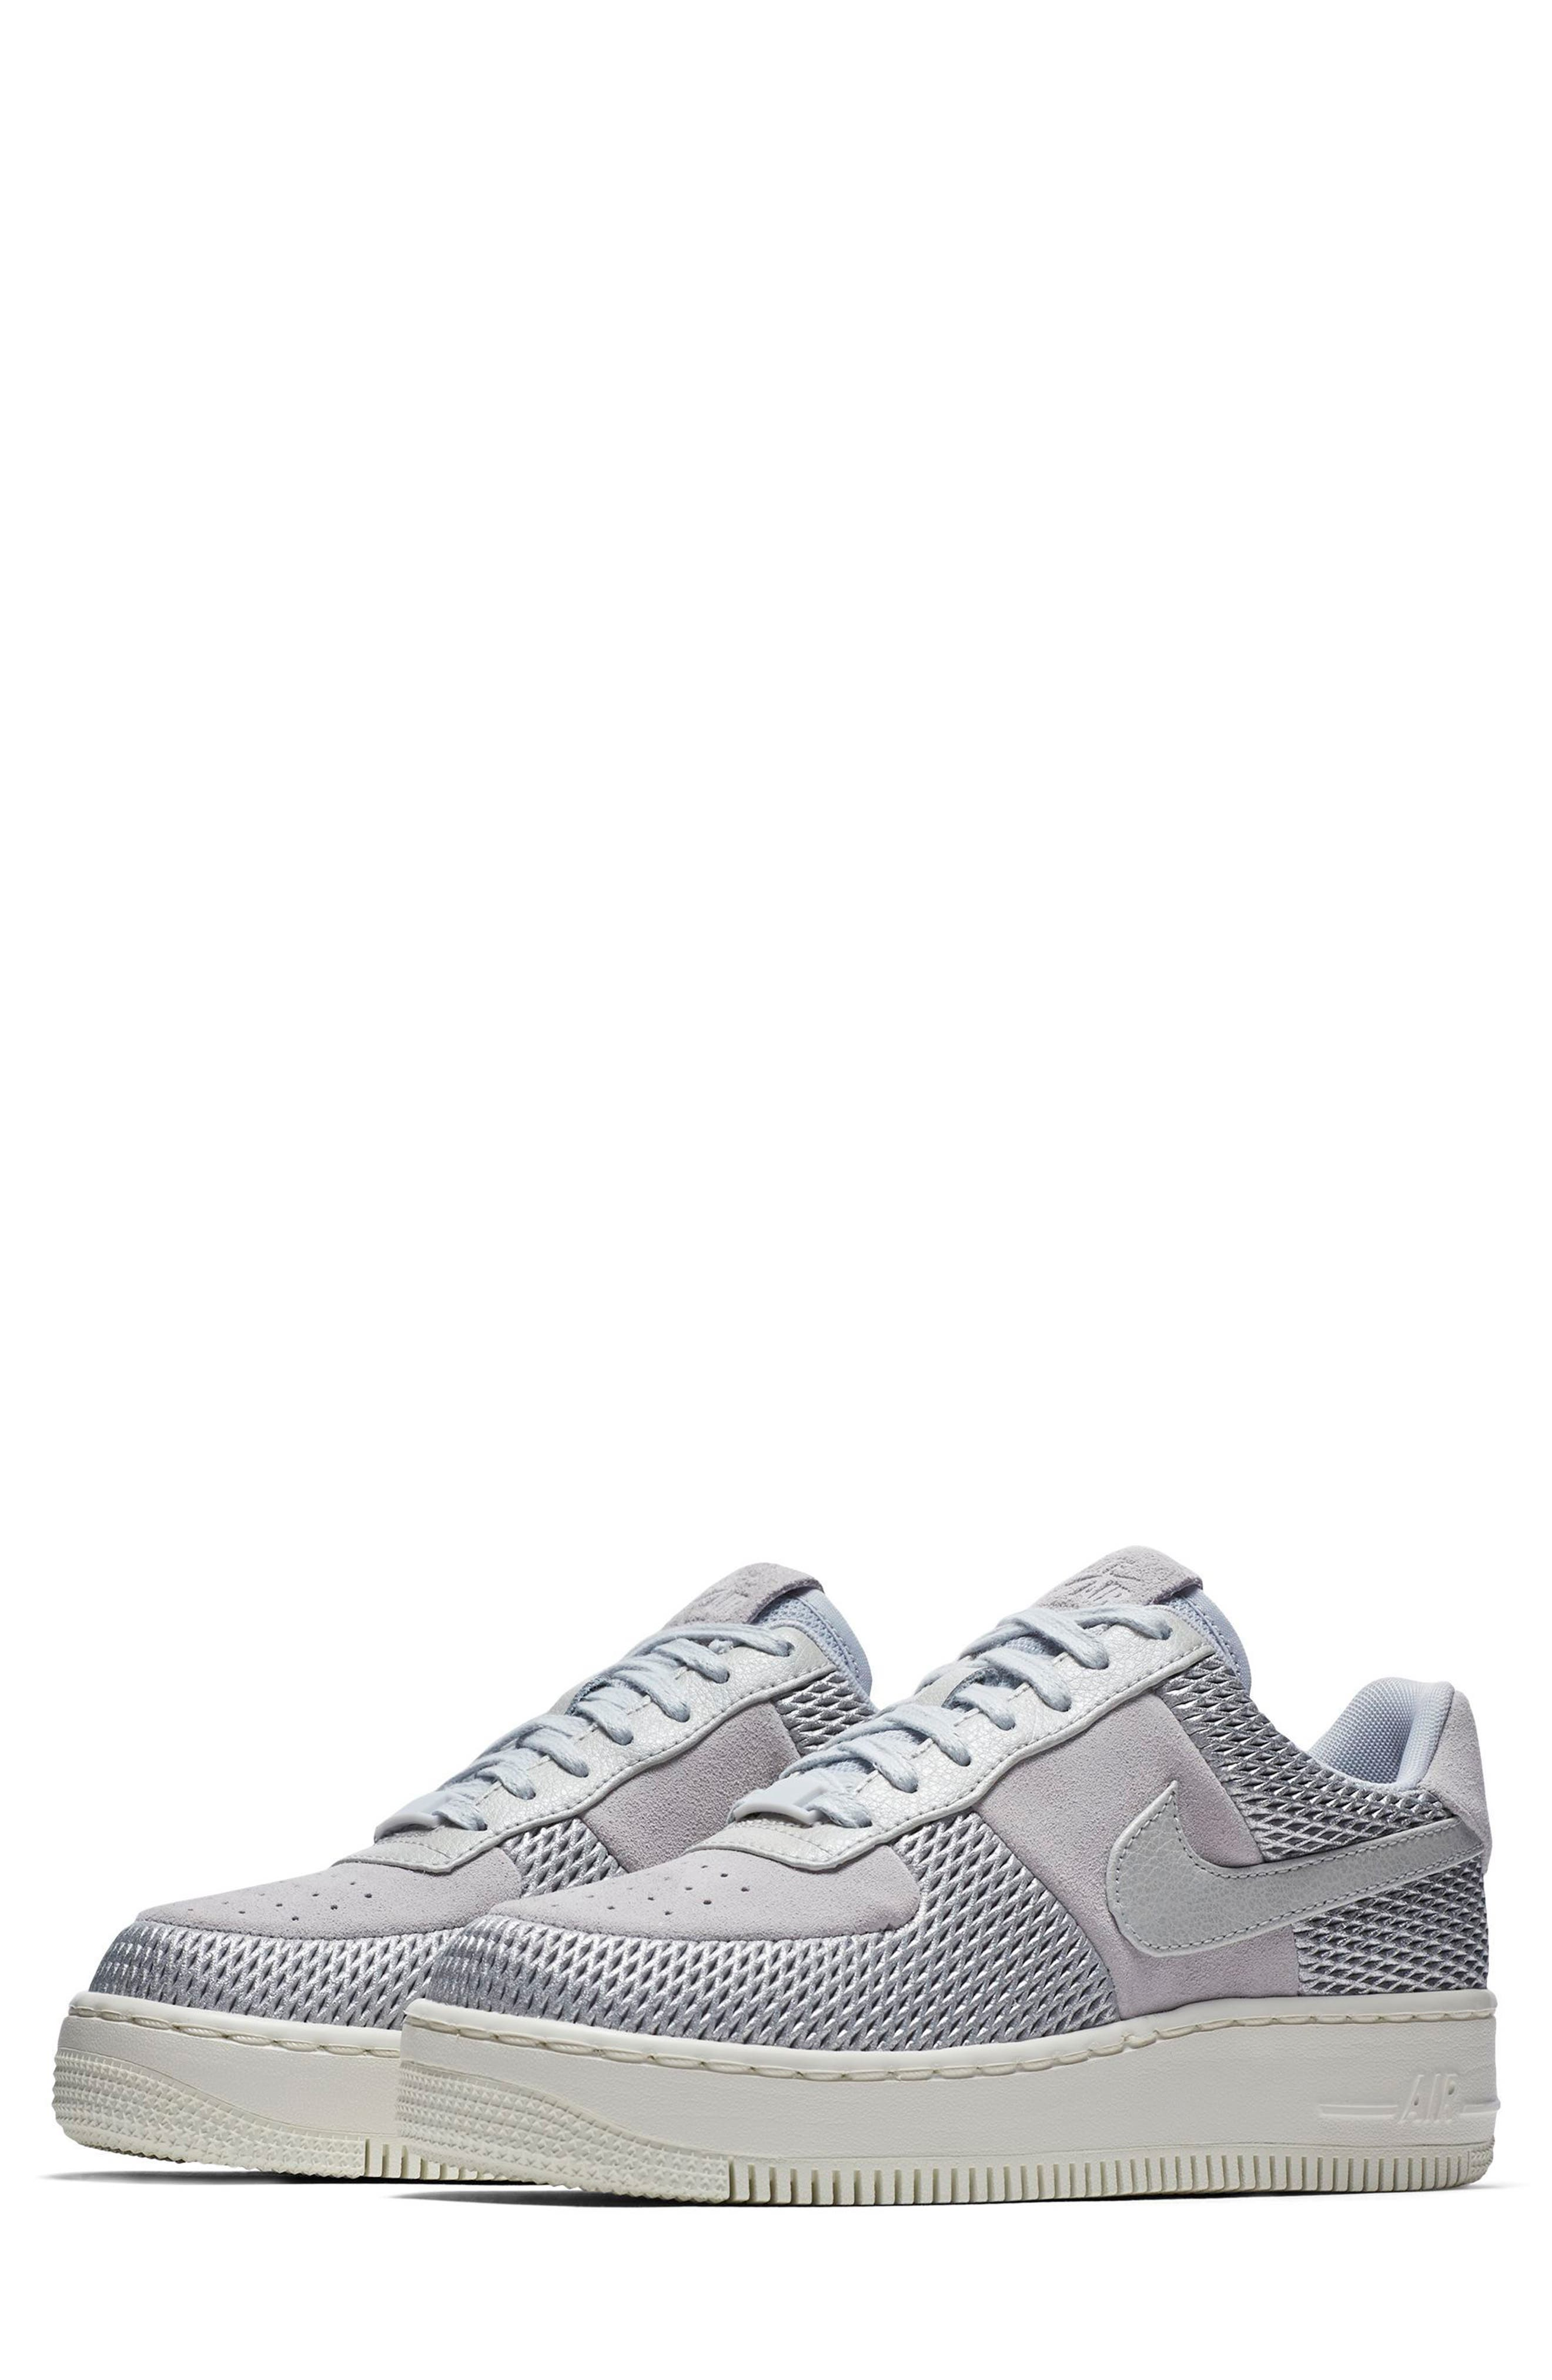 Nike Air Force 1 Upstep Premium Platform Sneaker (Women)